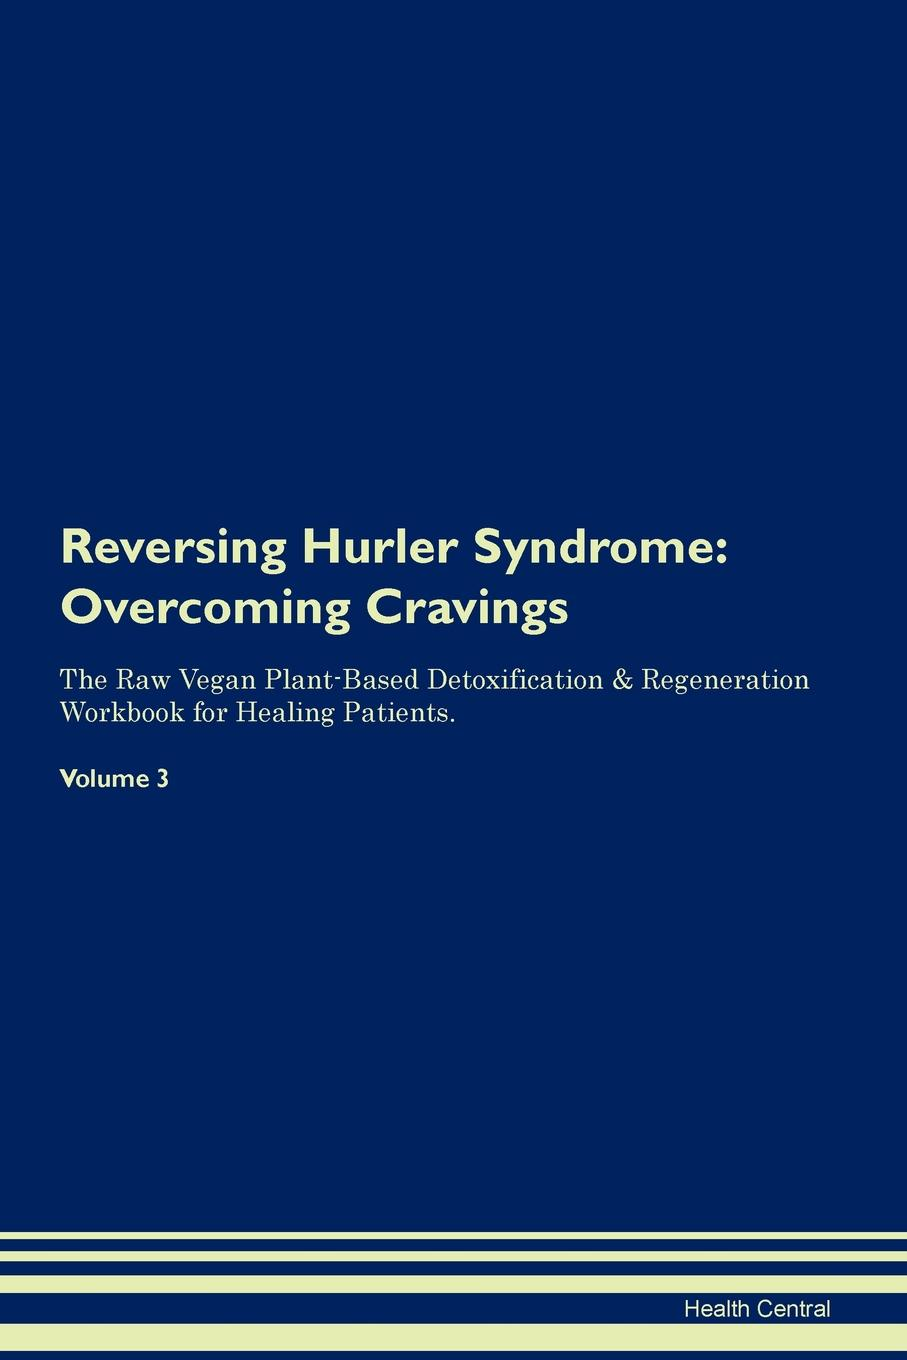 Health Central Reversing Hurler Syndrome. Overcoming Cravings The Raw Vegan Plant-Based Detoxification . Regeneration Workbook for Healing Patients. Volume 3 prevalance of metabolic syndrome in baghdad